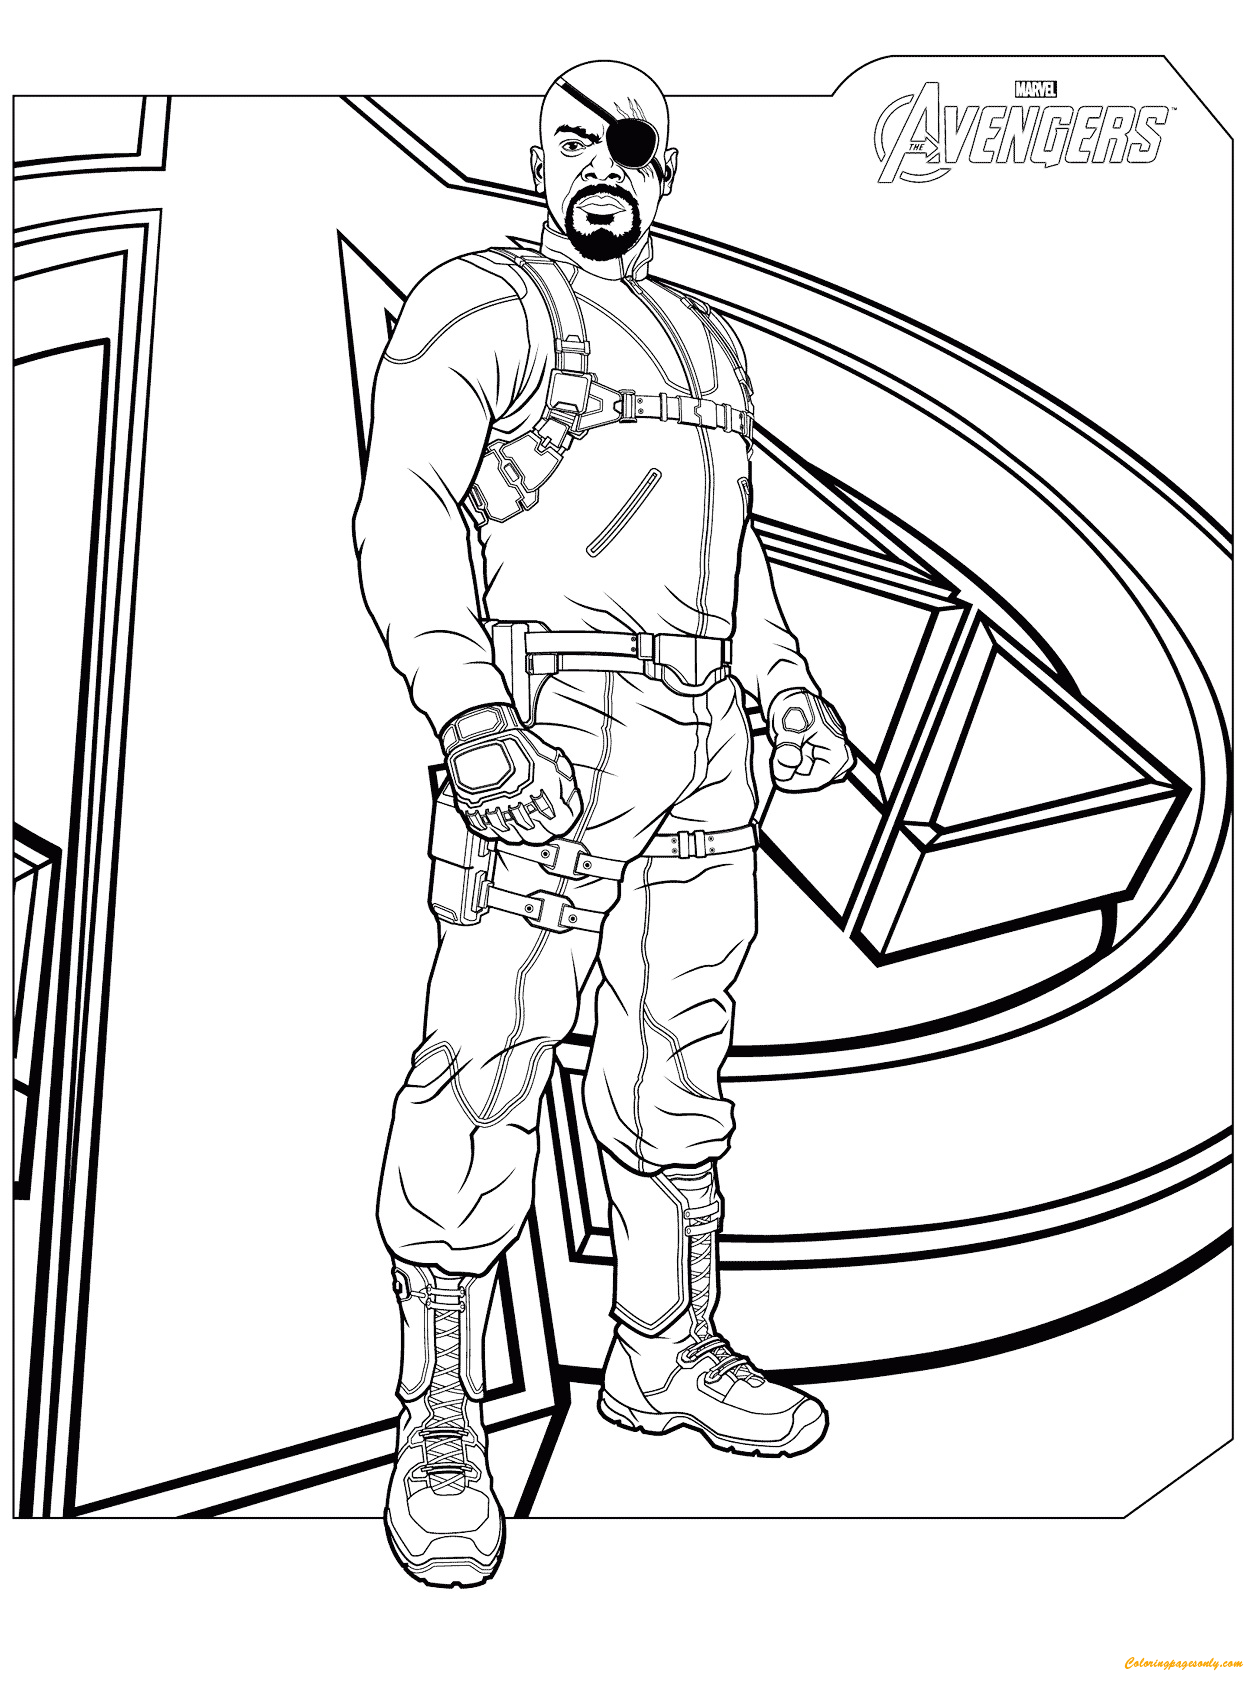 Nick Fury from Avengers Coloring